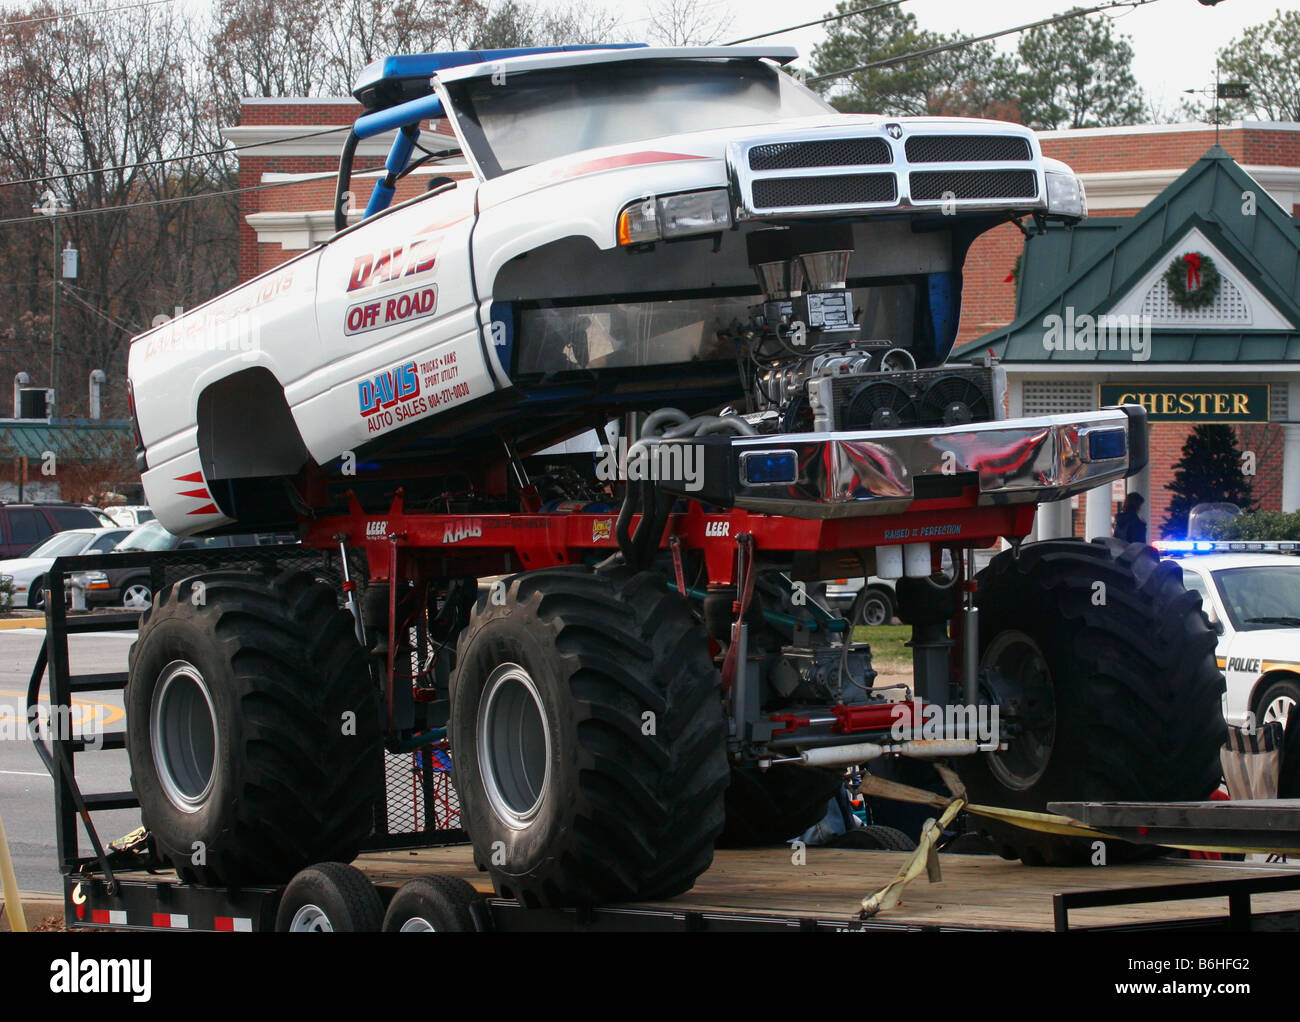 Gladiator Off Road Tires >> Monster truck. Off road vehicle on display Stock Photo, Royalty Free Image: 21283698 - Alamy